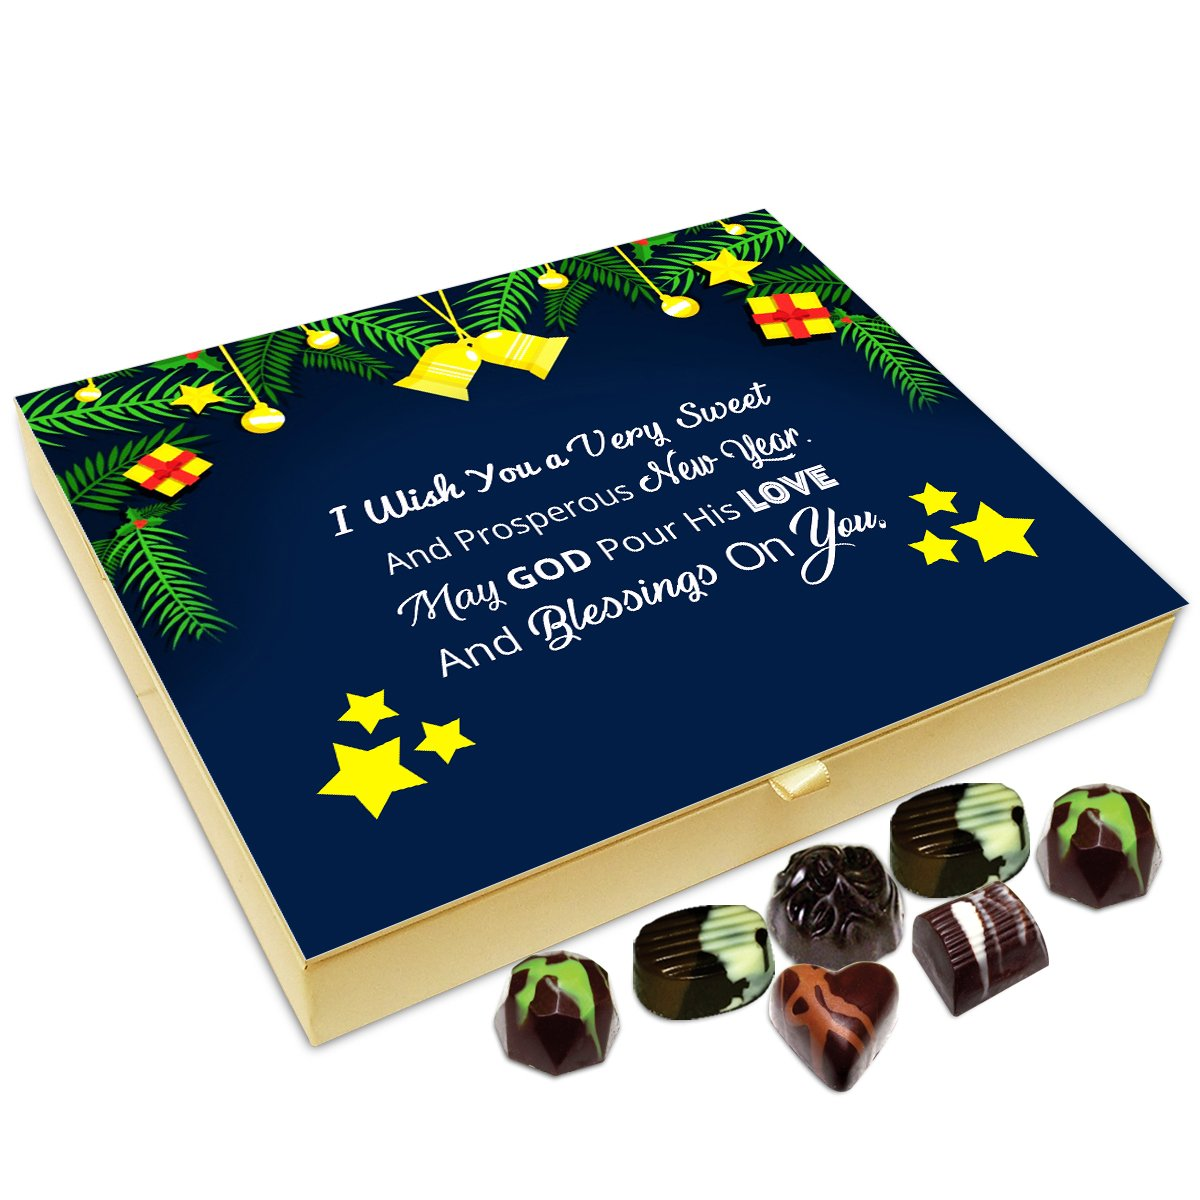 Chocholik New Year Chocolate Box – I Wish You A Very Sweet and Prosperous New Year Chocolate Box – 20pc